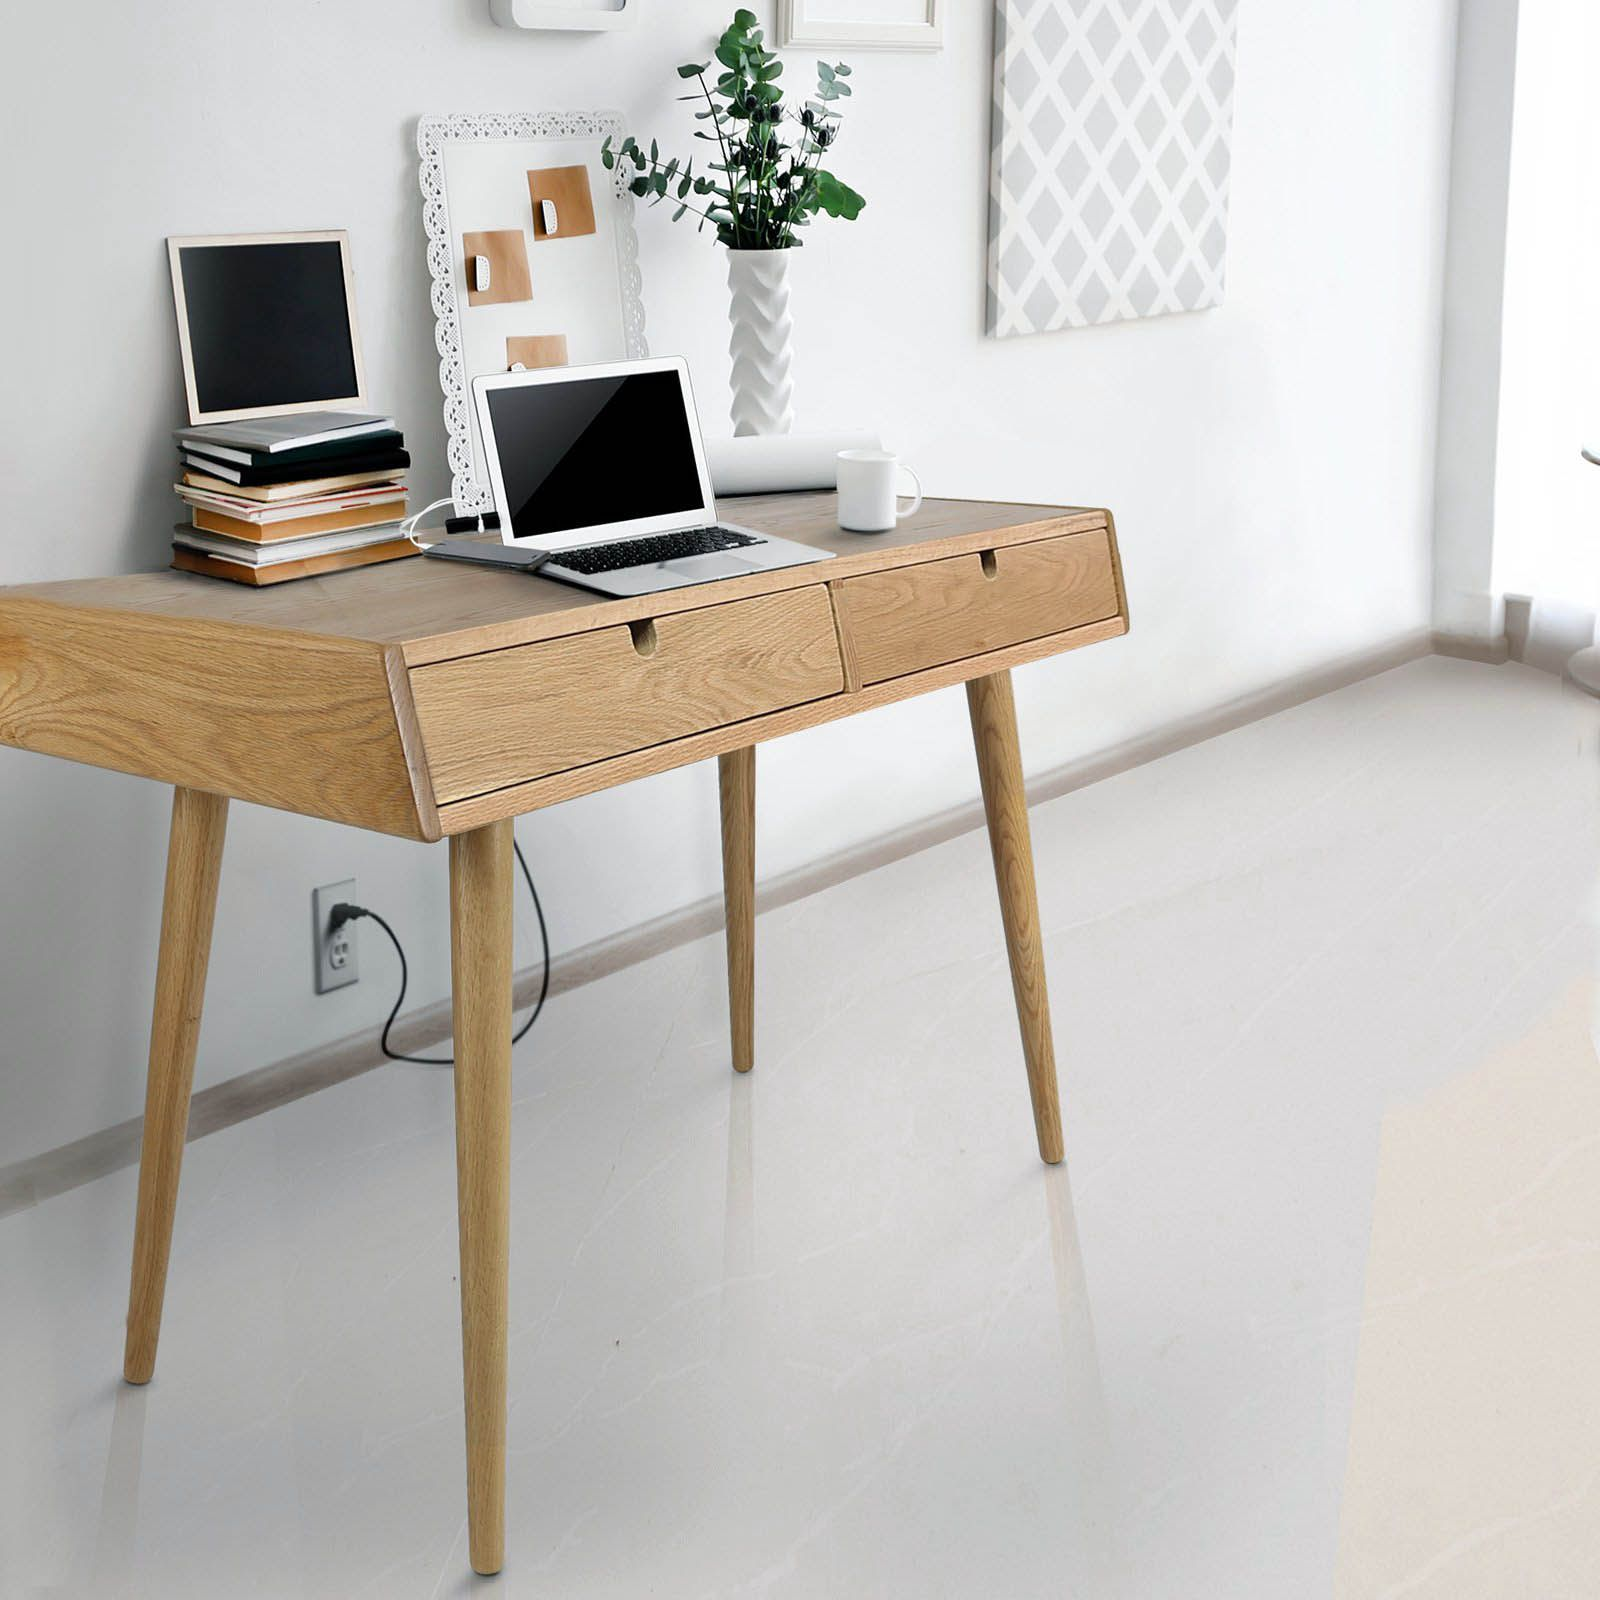 Cozy Mid Century Modern Standing Desk For Your Home Solid Wood Writing Desk Wood Writing Desk Solid Oak Desk